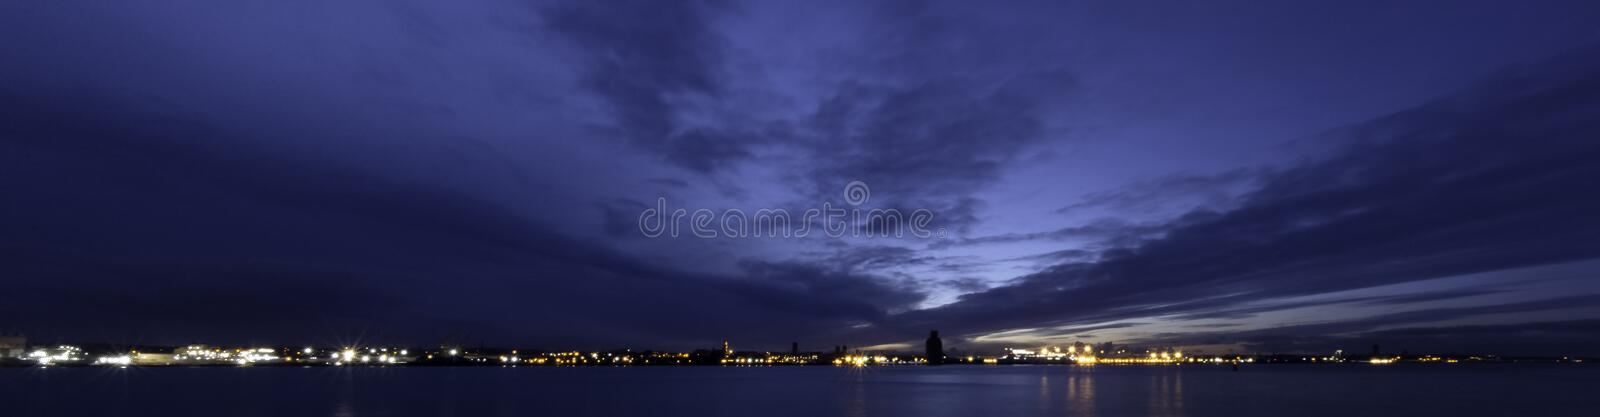 River Mersey and Birkenhead by night. Panoramic view from Keel Wharf waterfront in Liverpool, United Kingdom stock photo